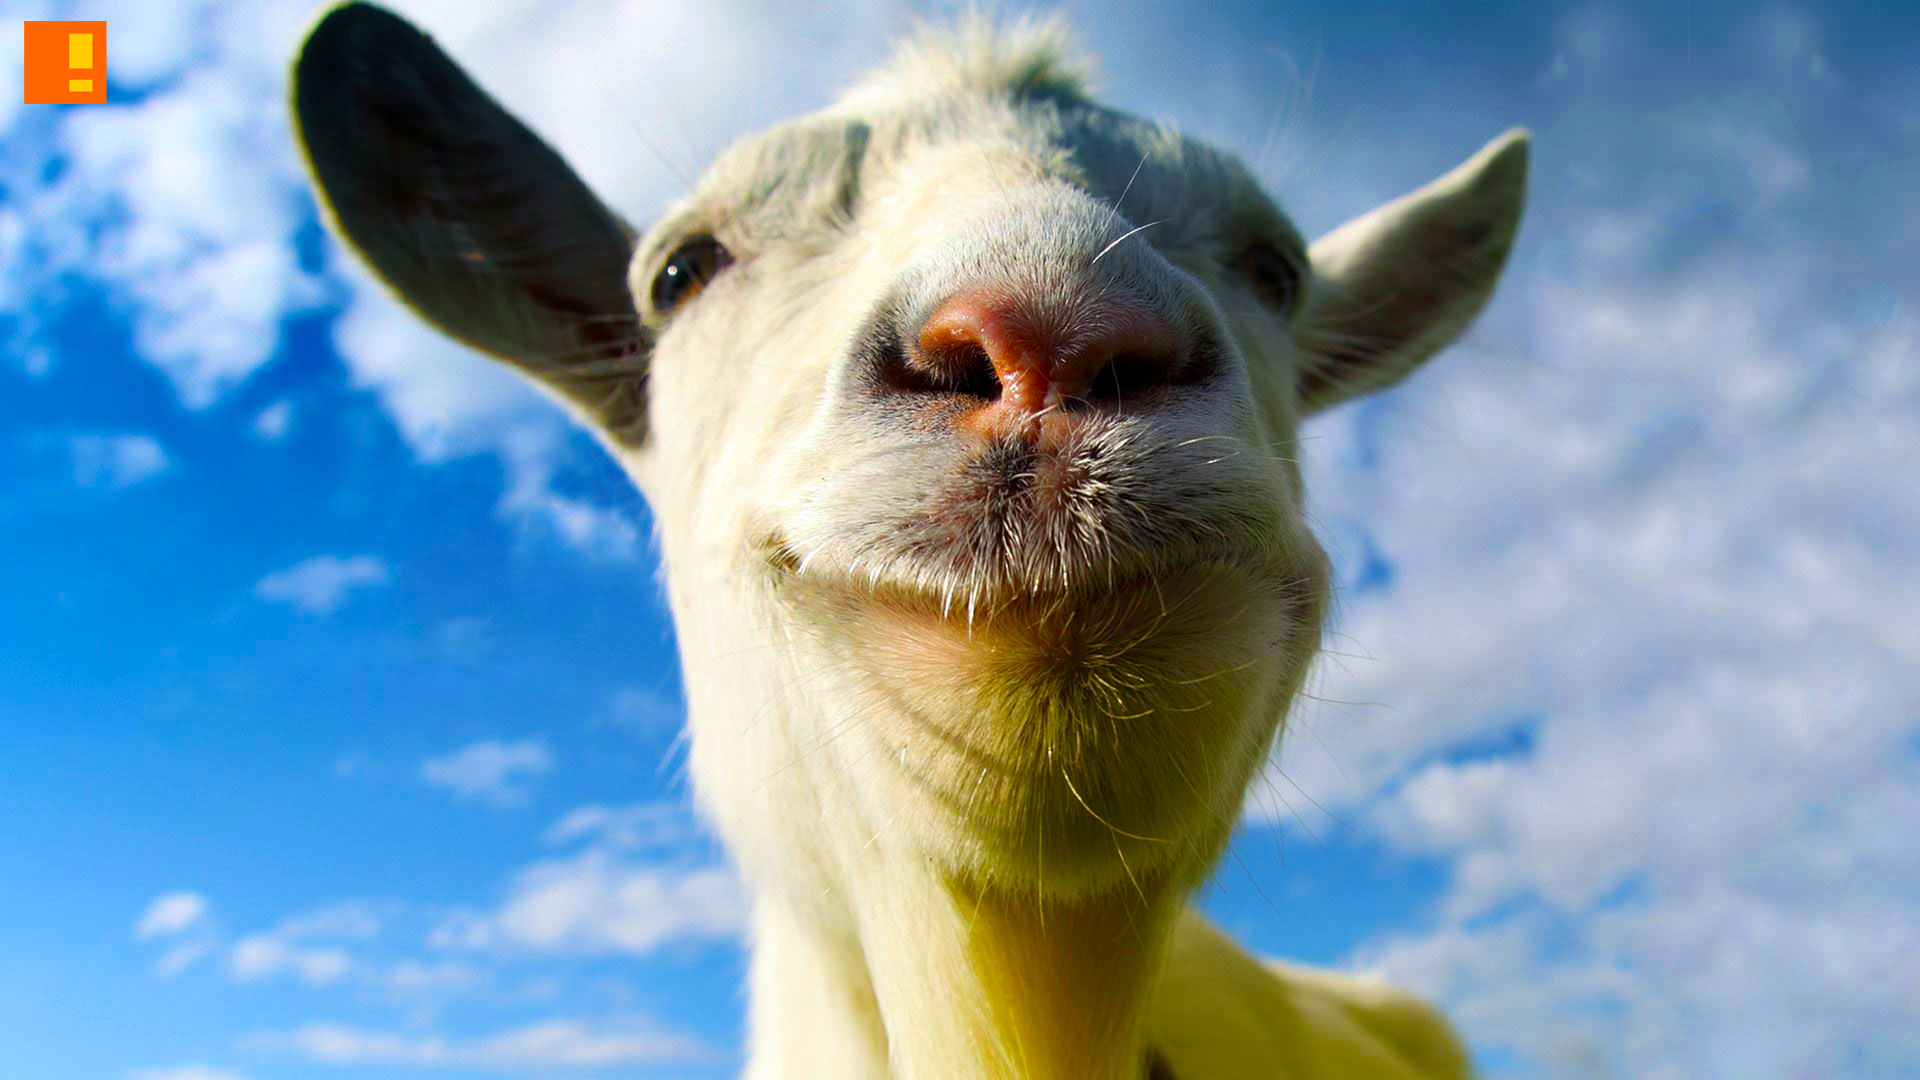 goat simulator, xbox, xbox one, the action pixel, entertainment on tap, @theactionpixel